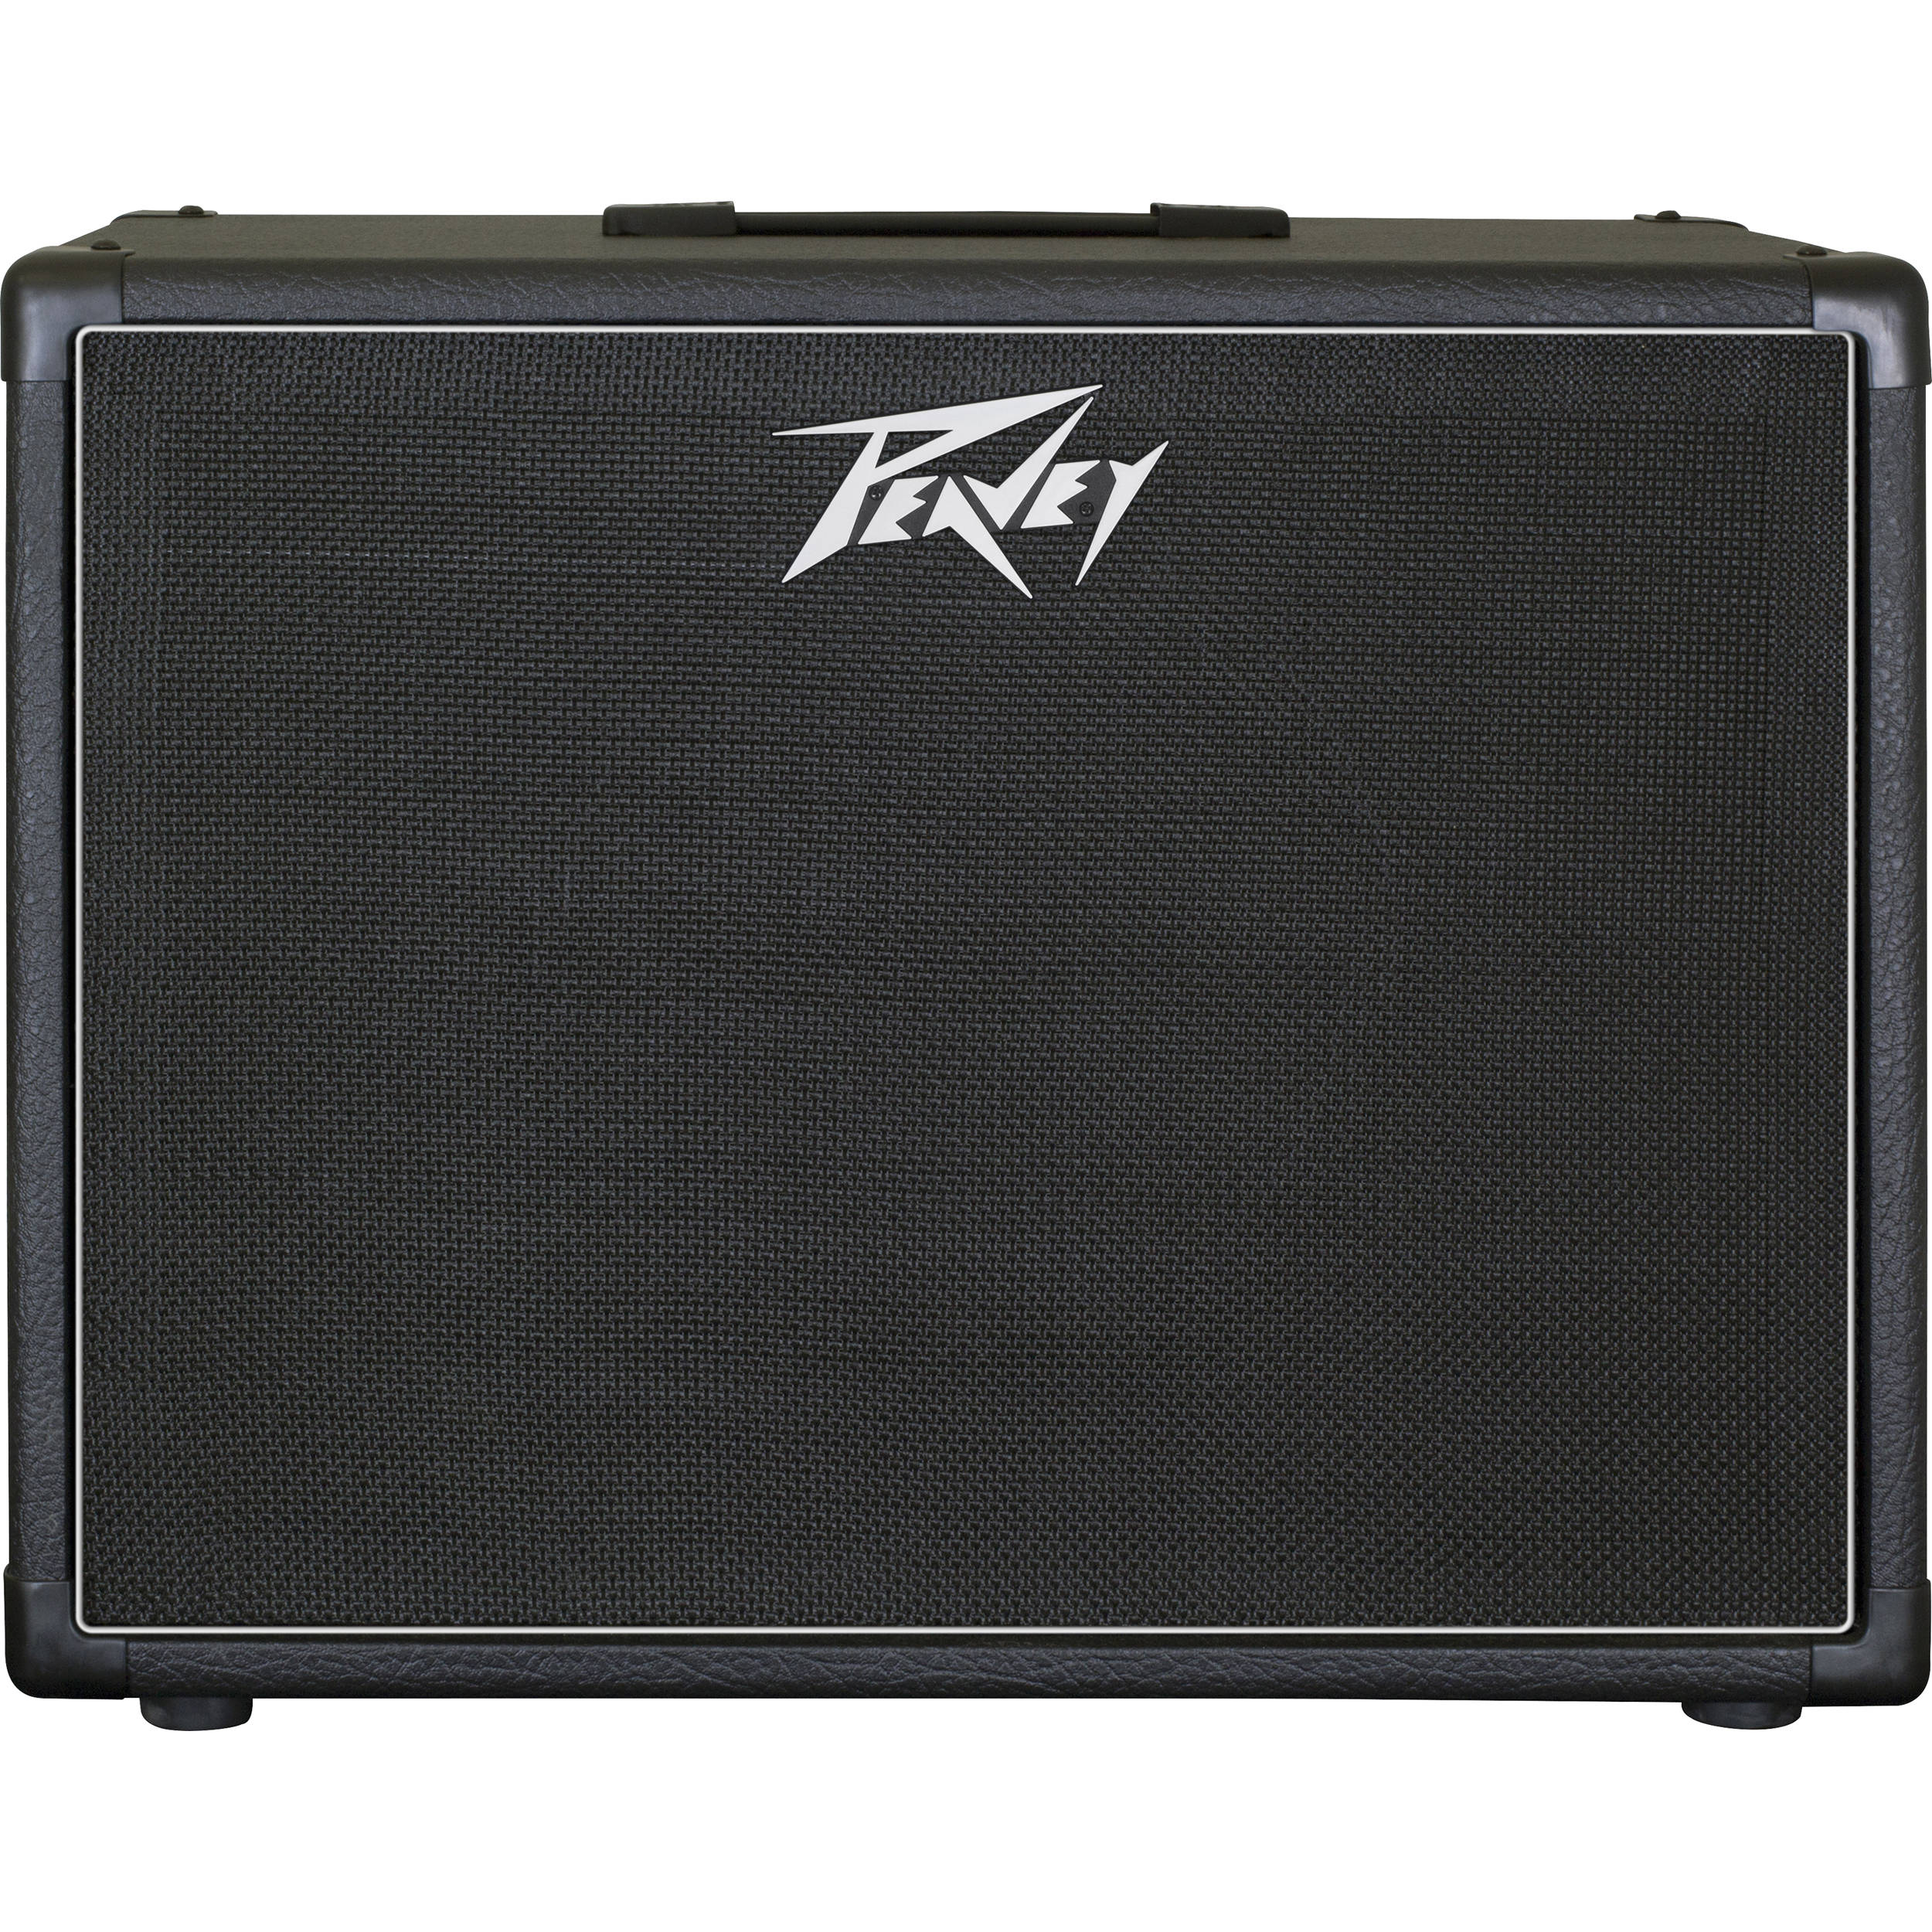 peavey 112 6 electric guitar cab single 12 speaker cabinet w mic stand cable 14367649109 ebay. Black Bedroom Furniture Sets. Home Design Ideas